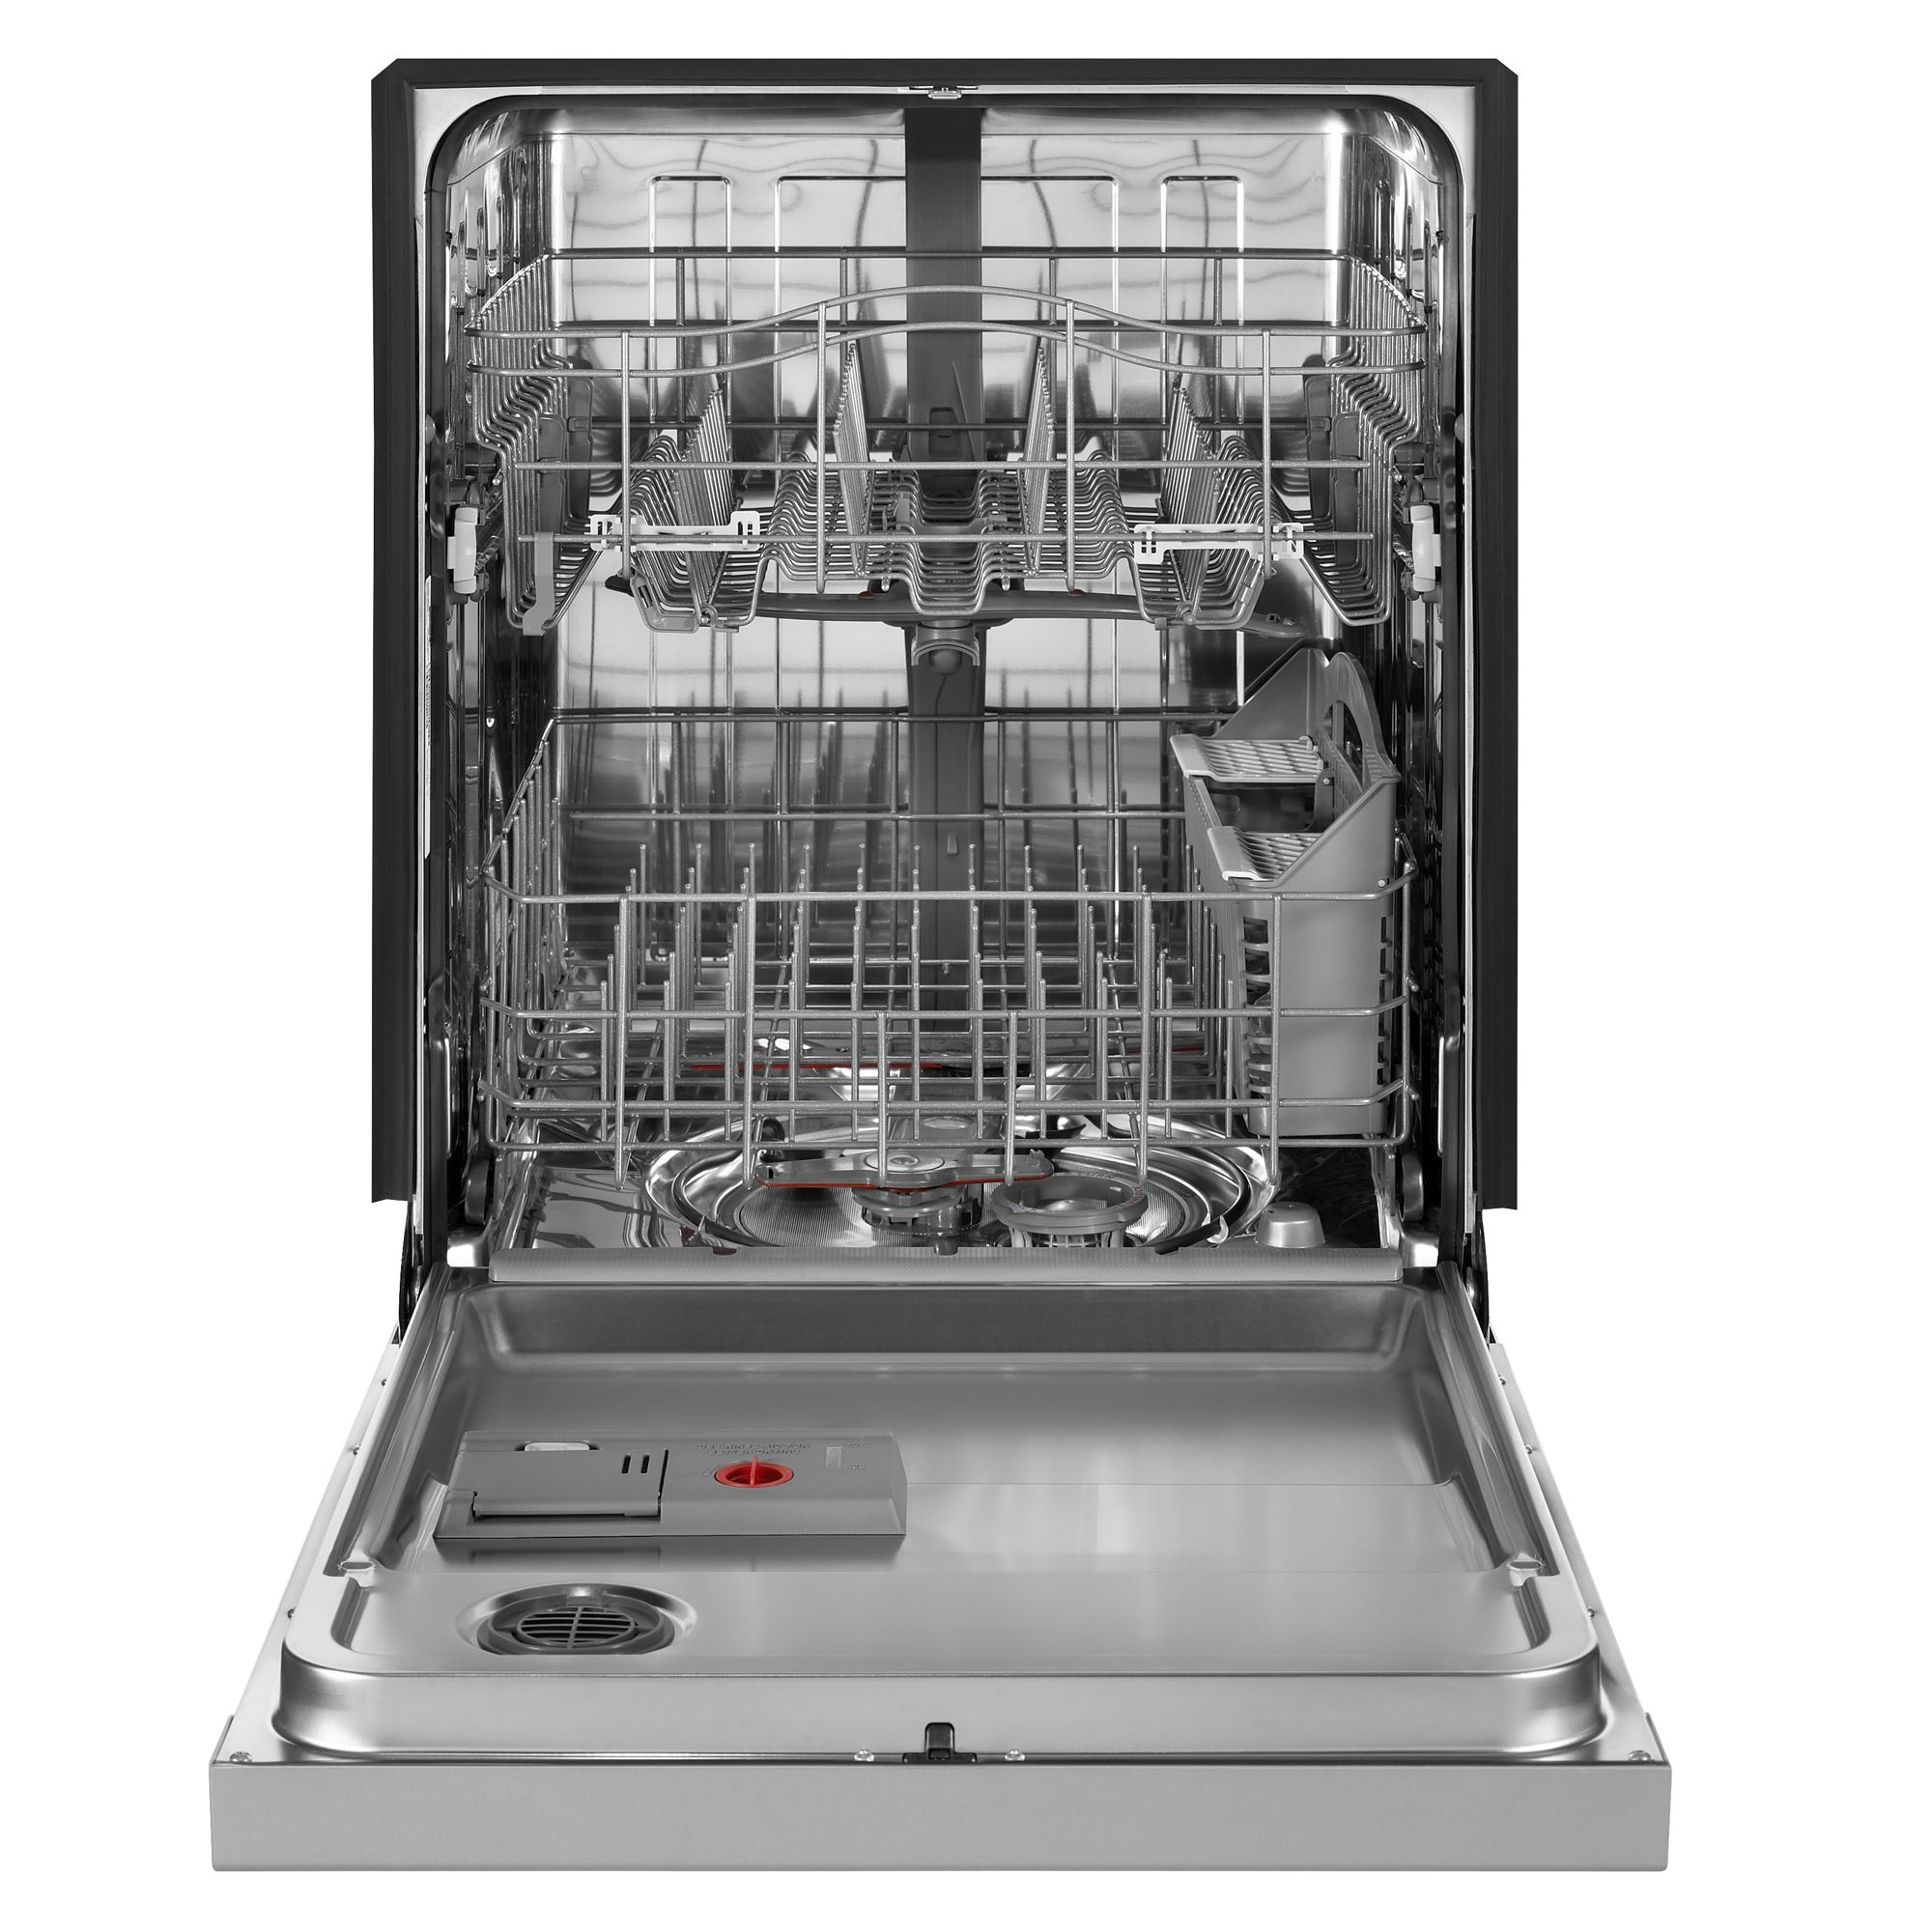 "Kenmore Elite 24"" Built-In Dishwasher w/ PowerWash - Stainless Steel"